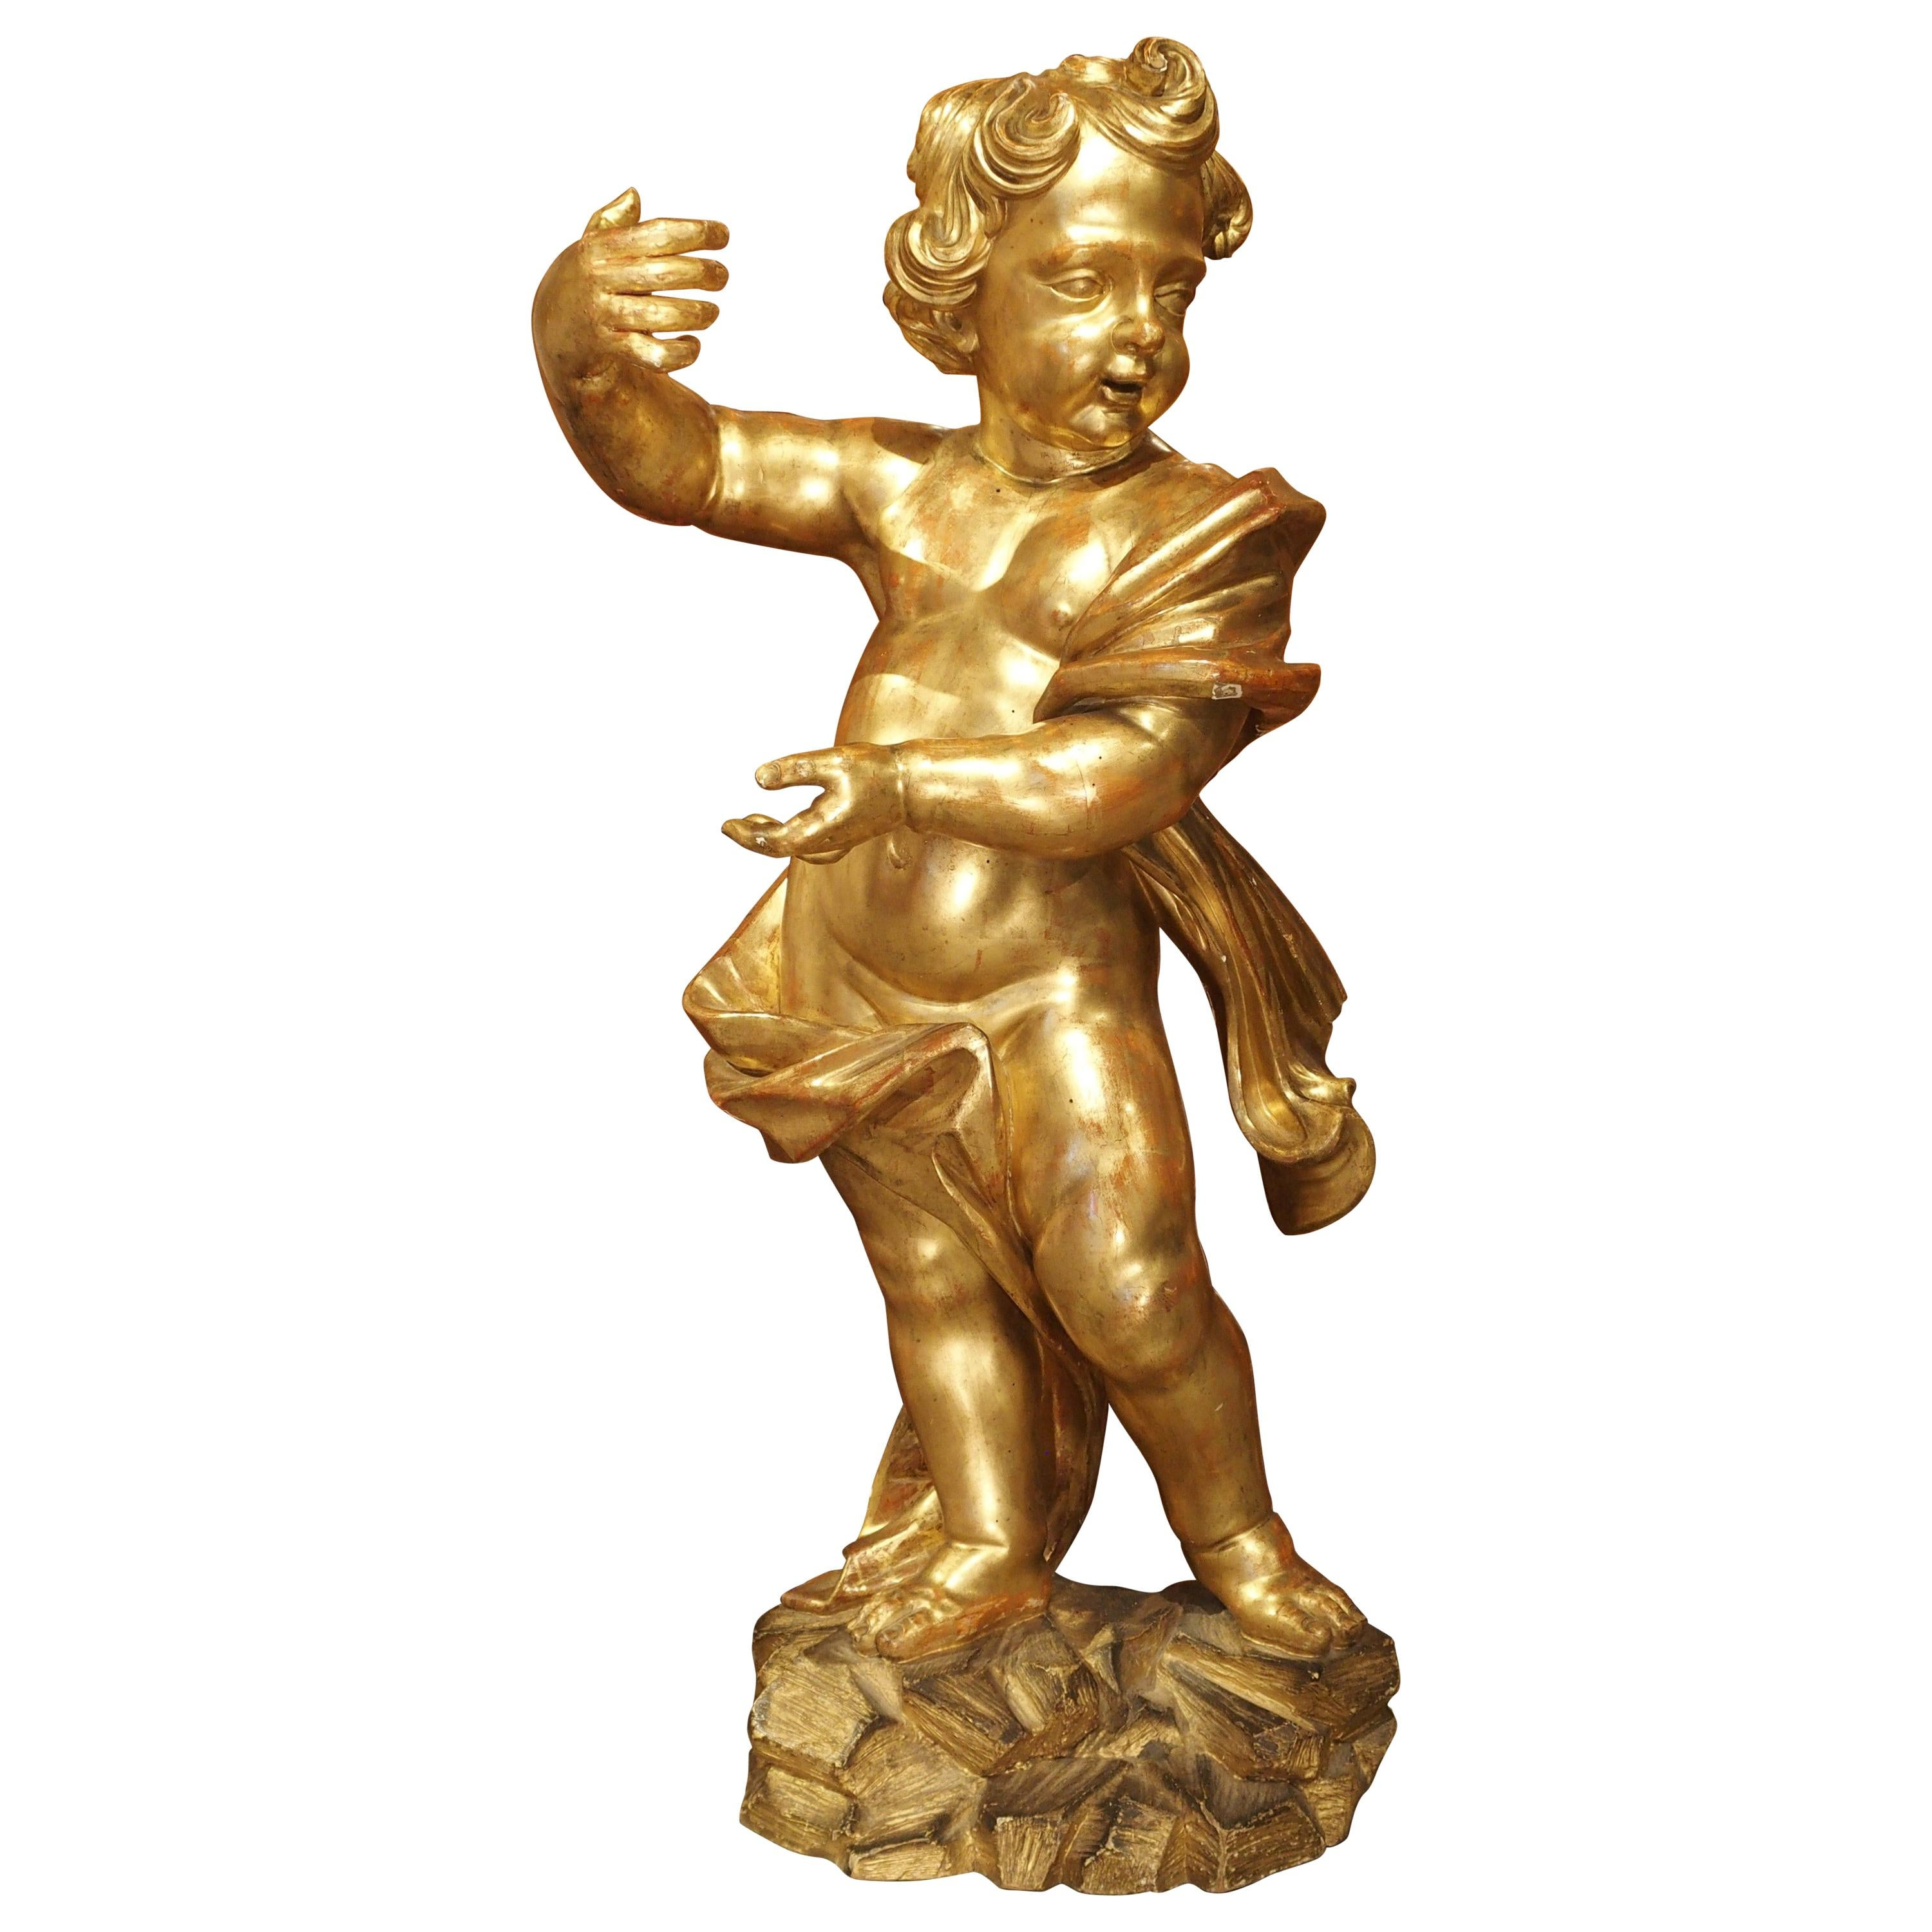 Large Early 18th Century Carved Giltwood Cherub Statue from Italy